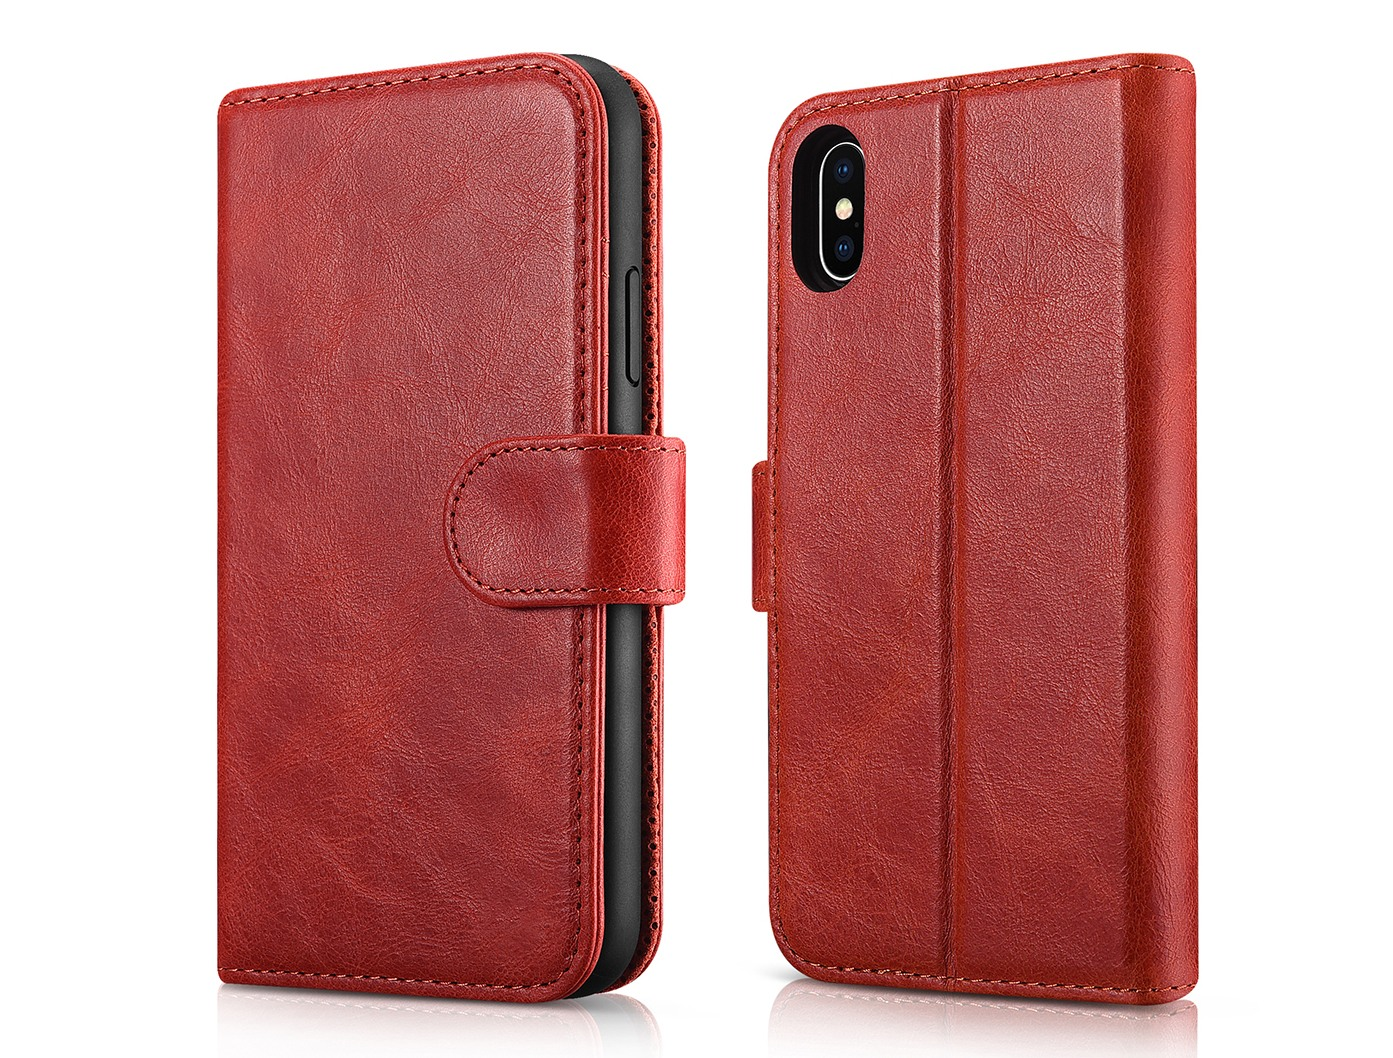 Husa piele naturala 2 in 1, inchidere magnetica, tip carte + back cover, stand, iPhone X / XS - iCarer Detachable, Rosu